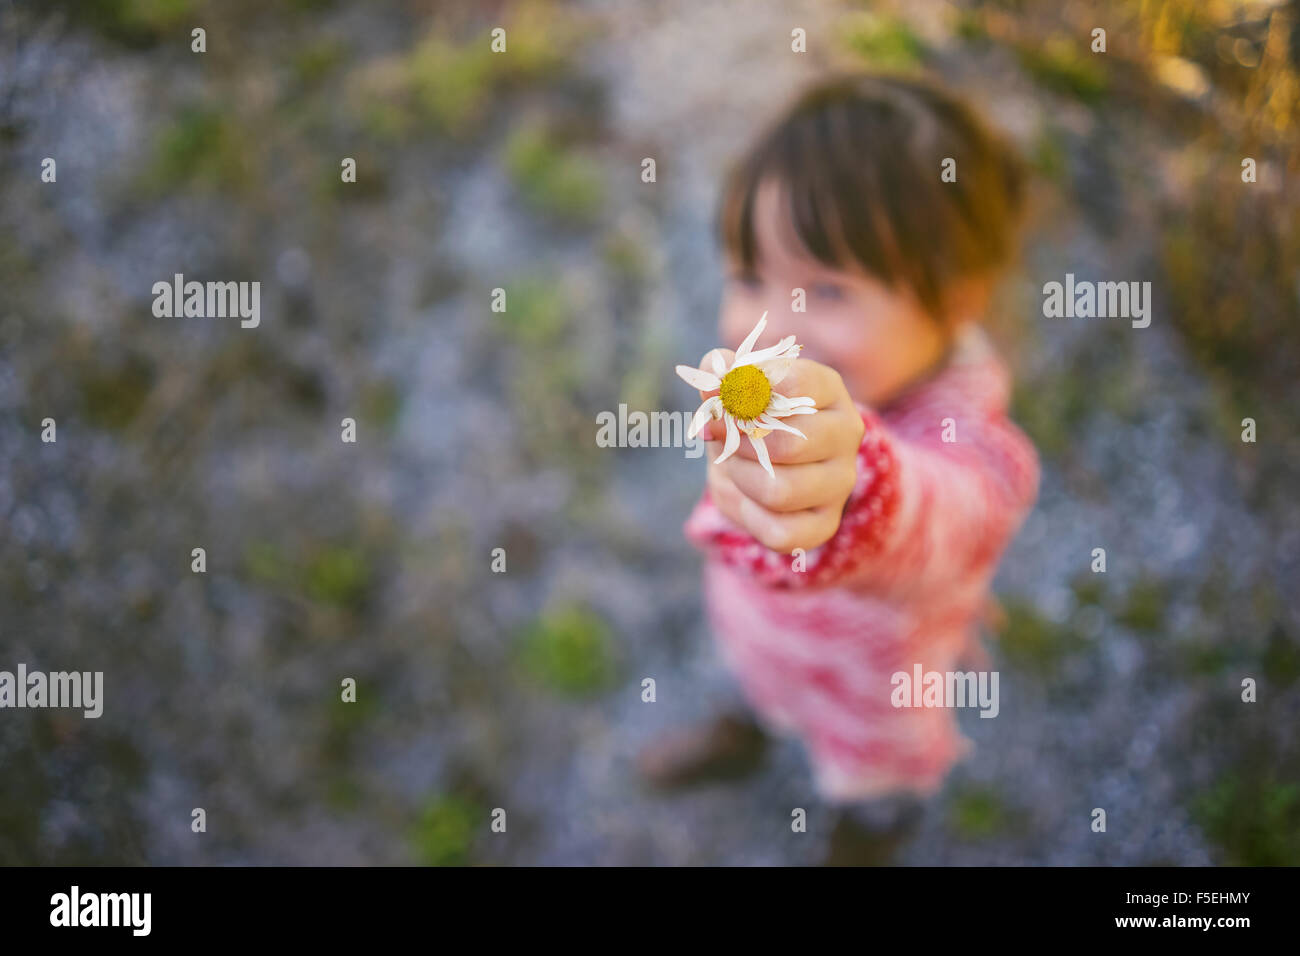 Girl offering a daisy - Stock Image